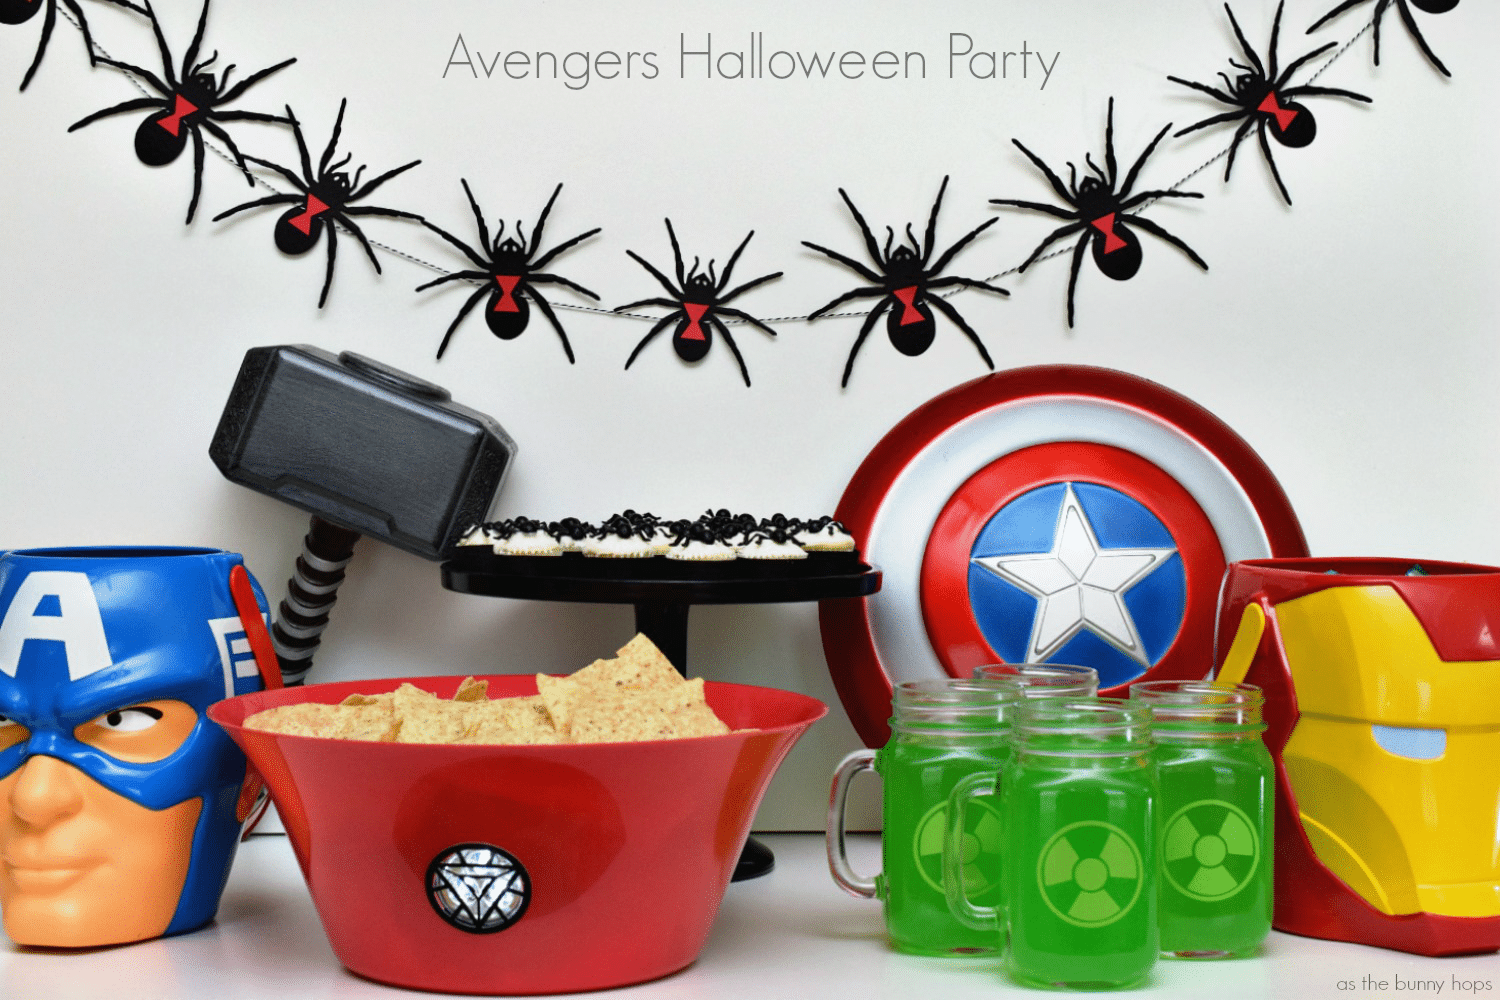 Avengers Halloween Party - As The Bunny Hops®